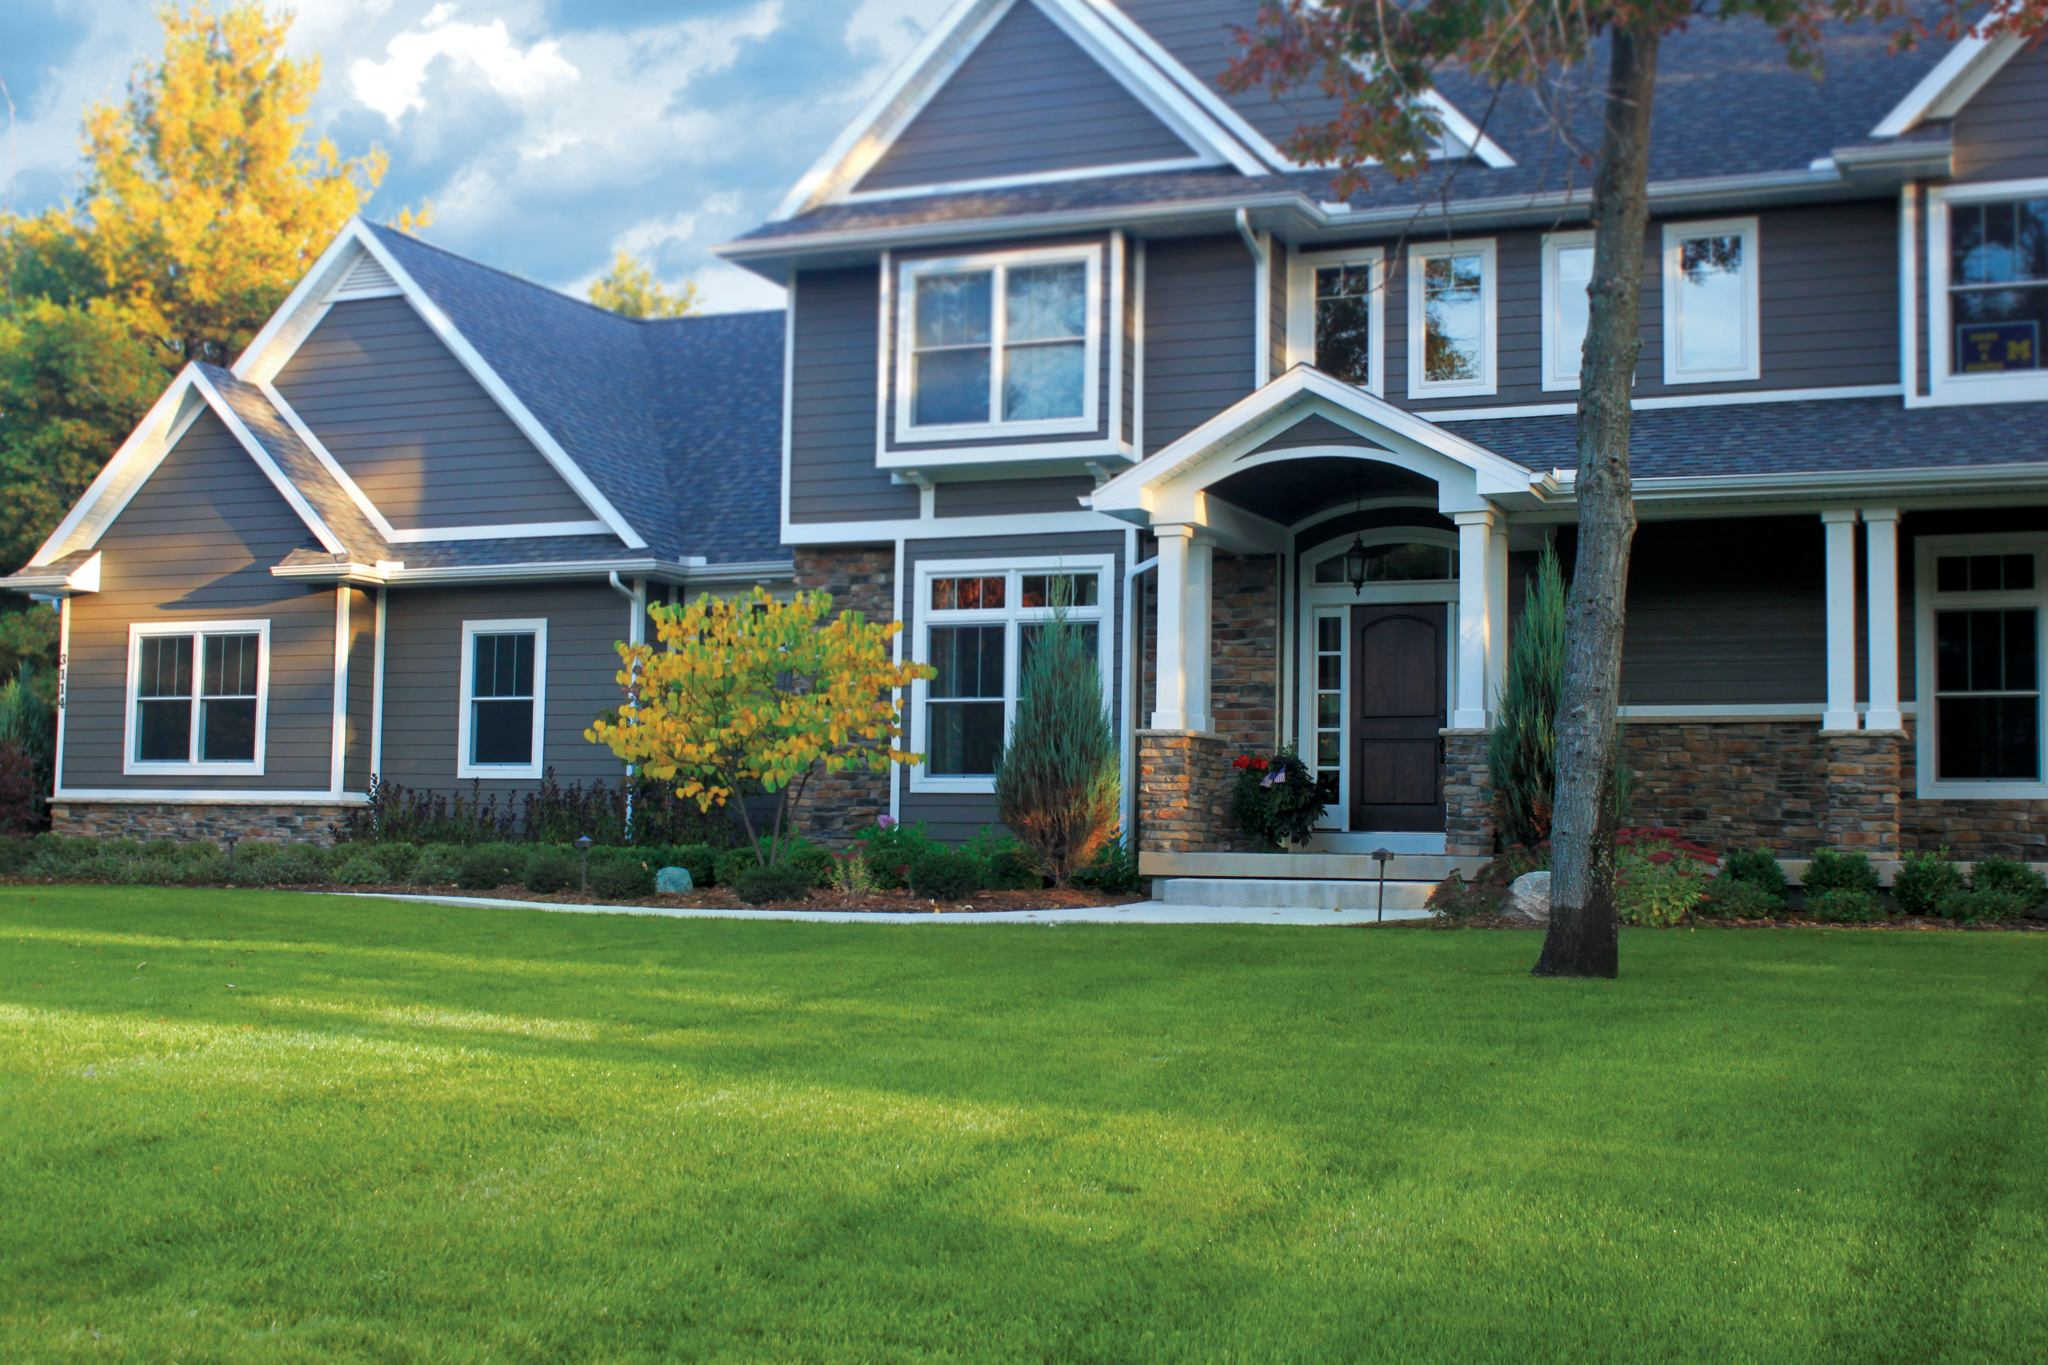 3 Reasons for Dead Patches in Your Lawn